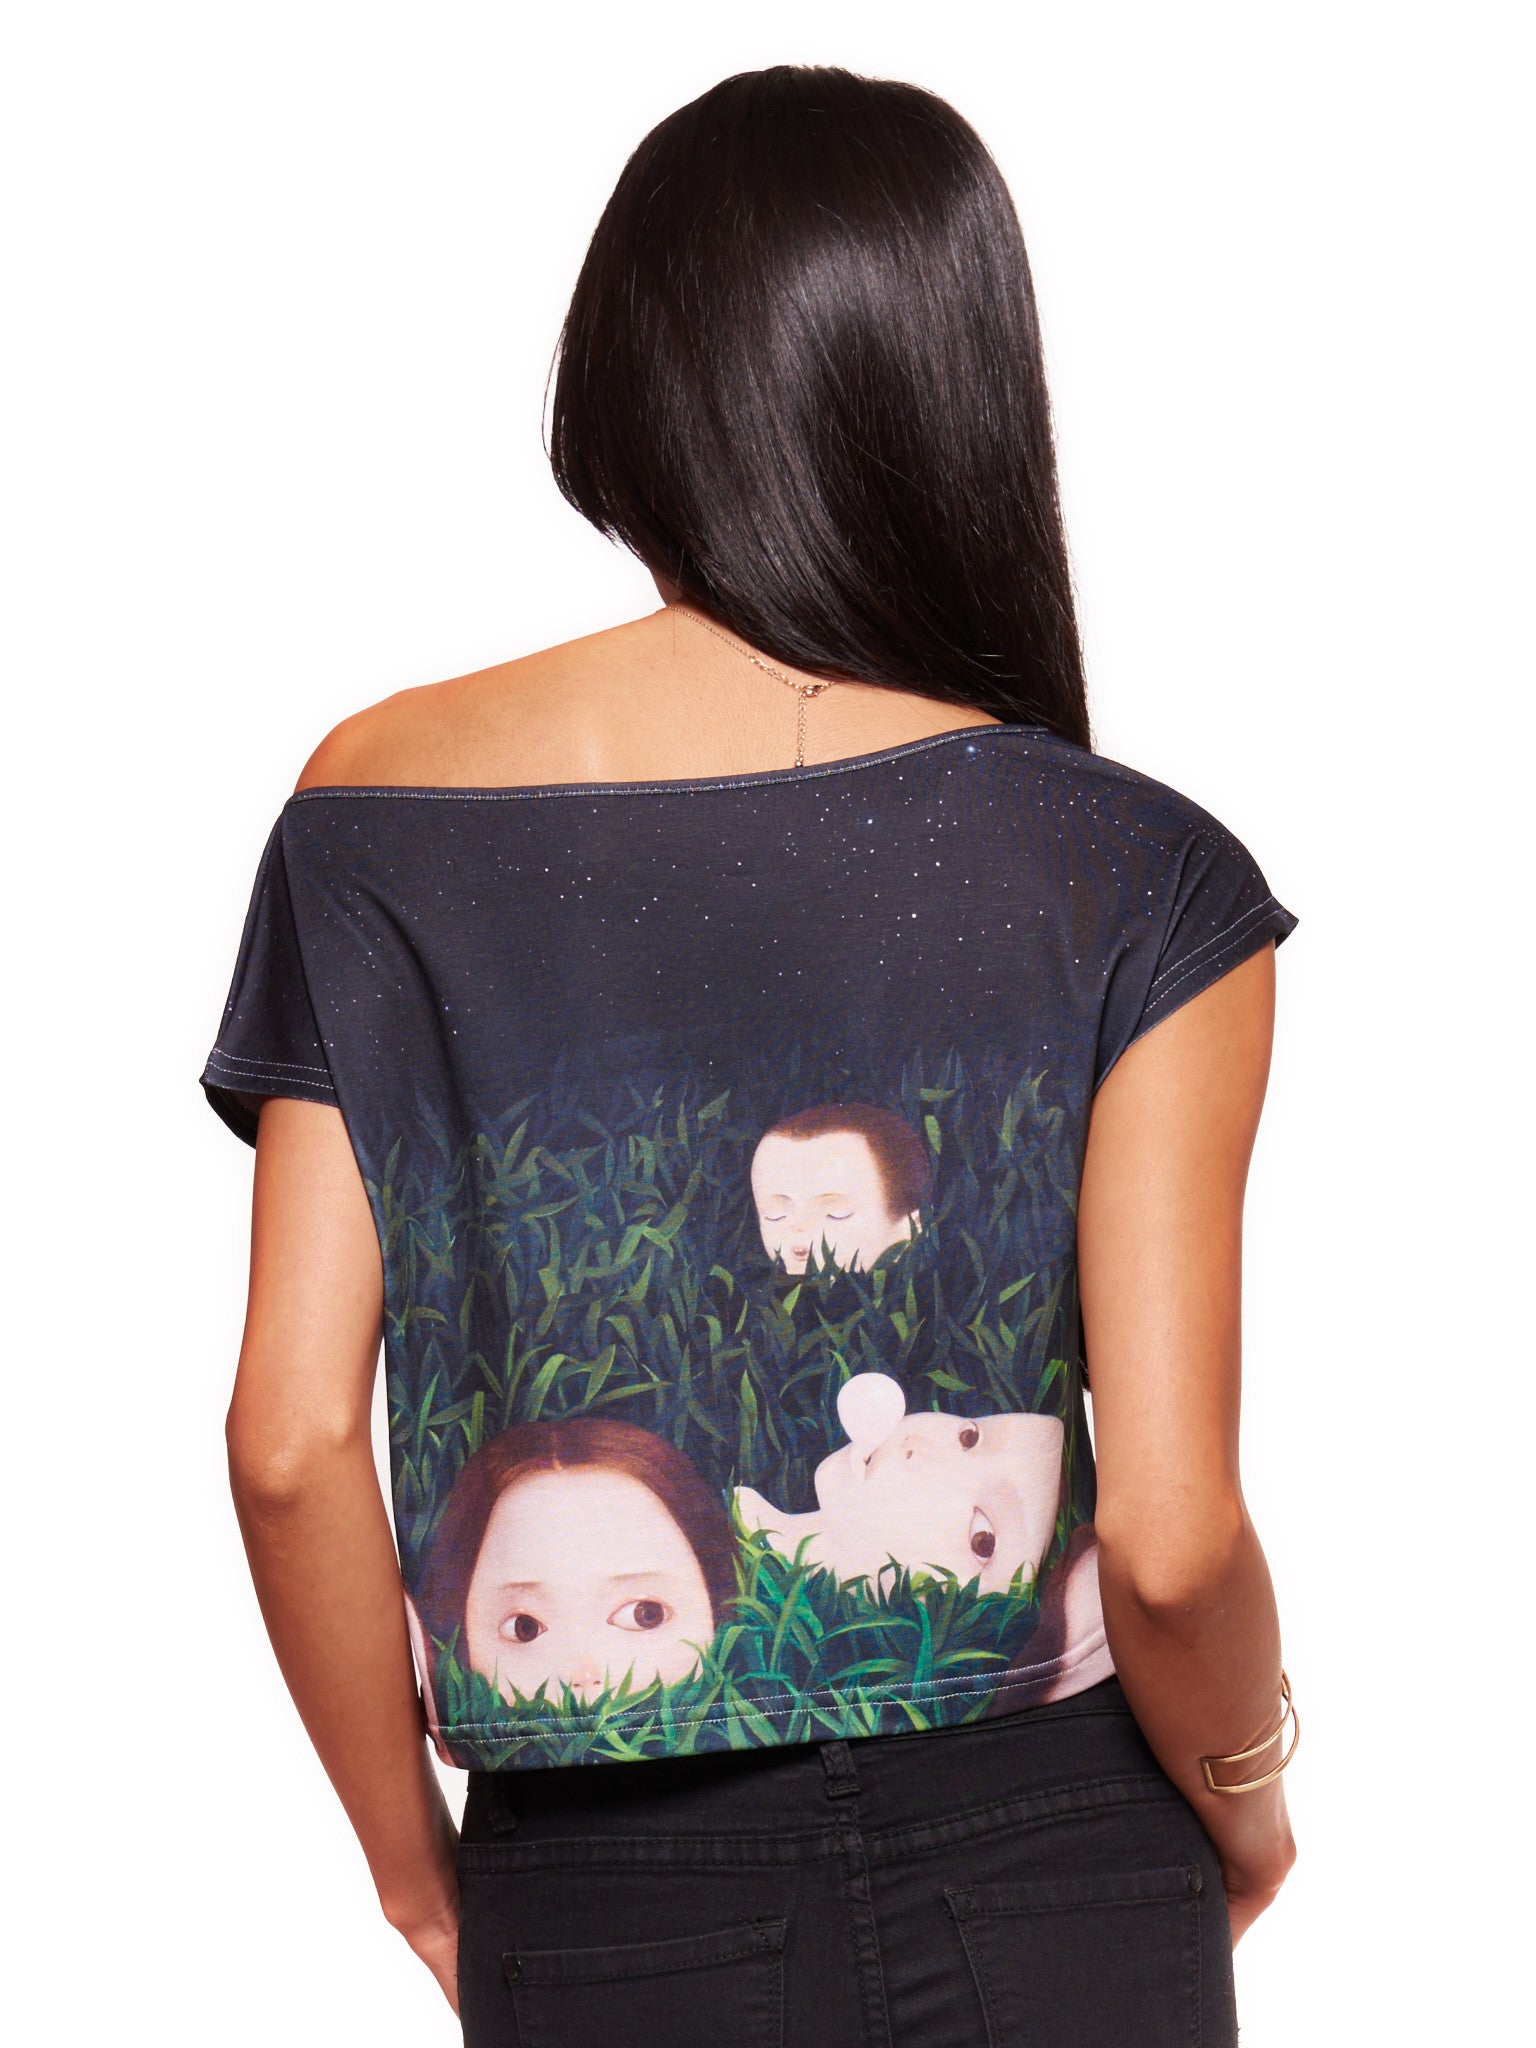 Wild Life Women's Crop Top - Nuvango Gallery & Goods - 2